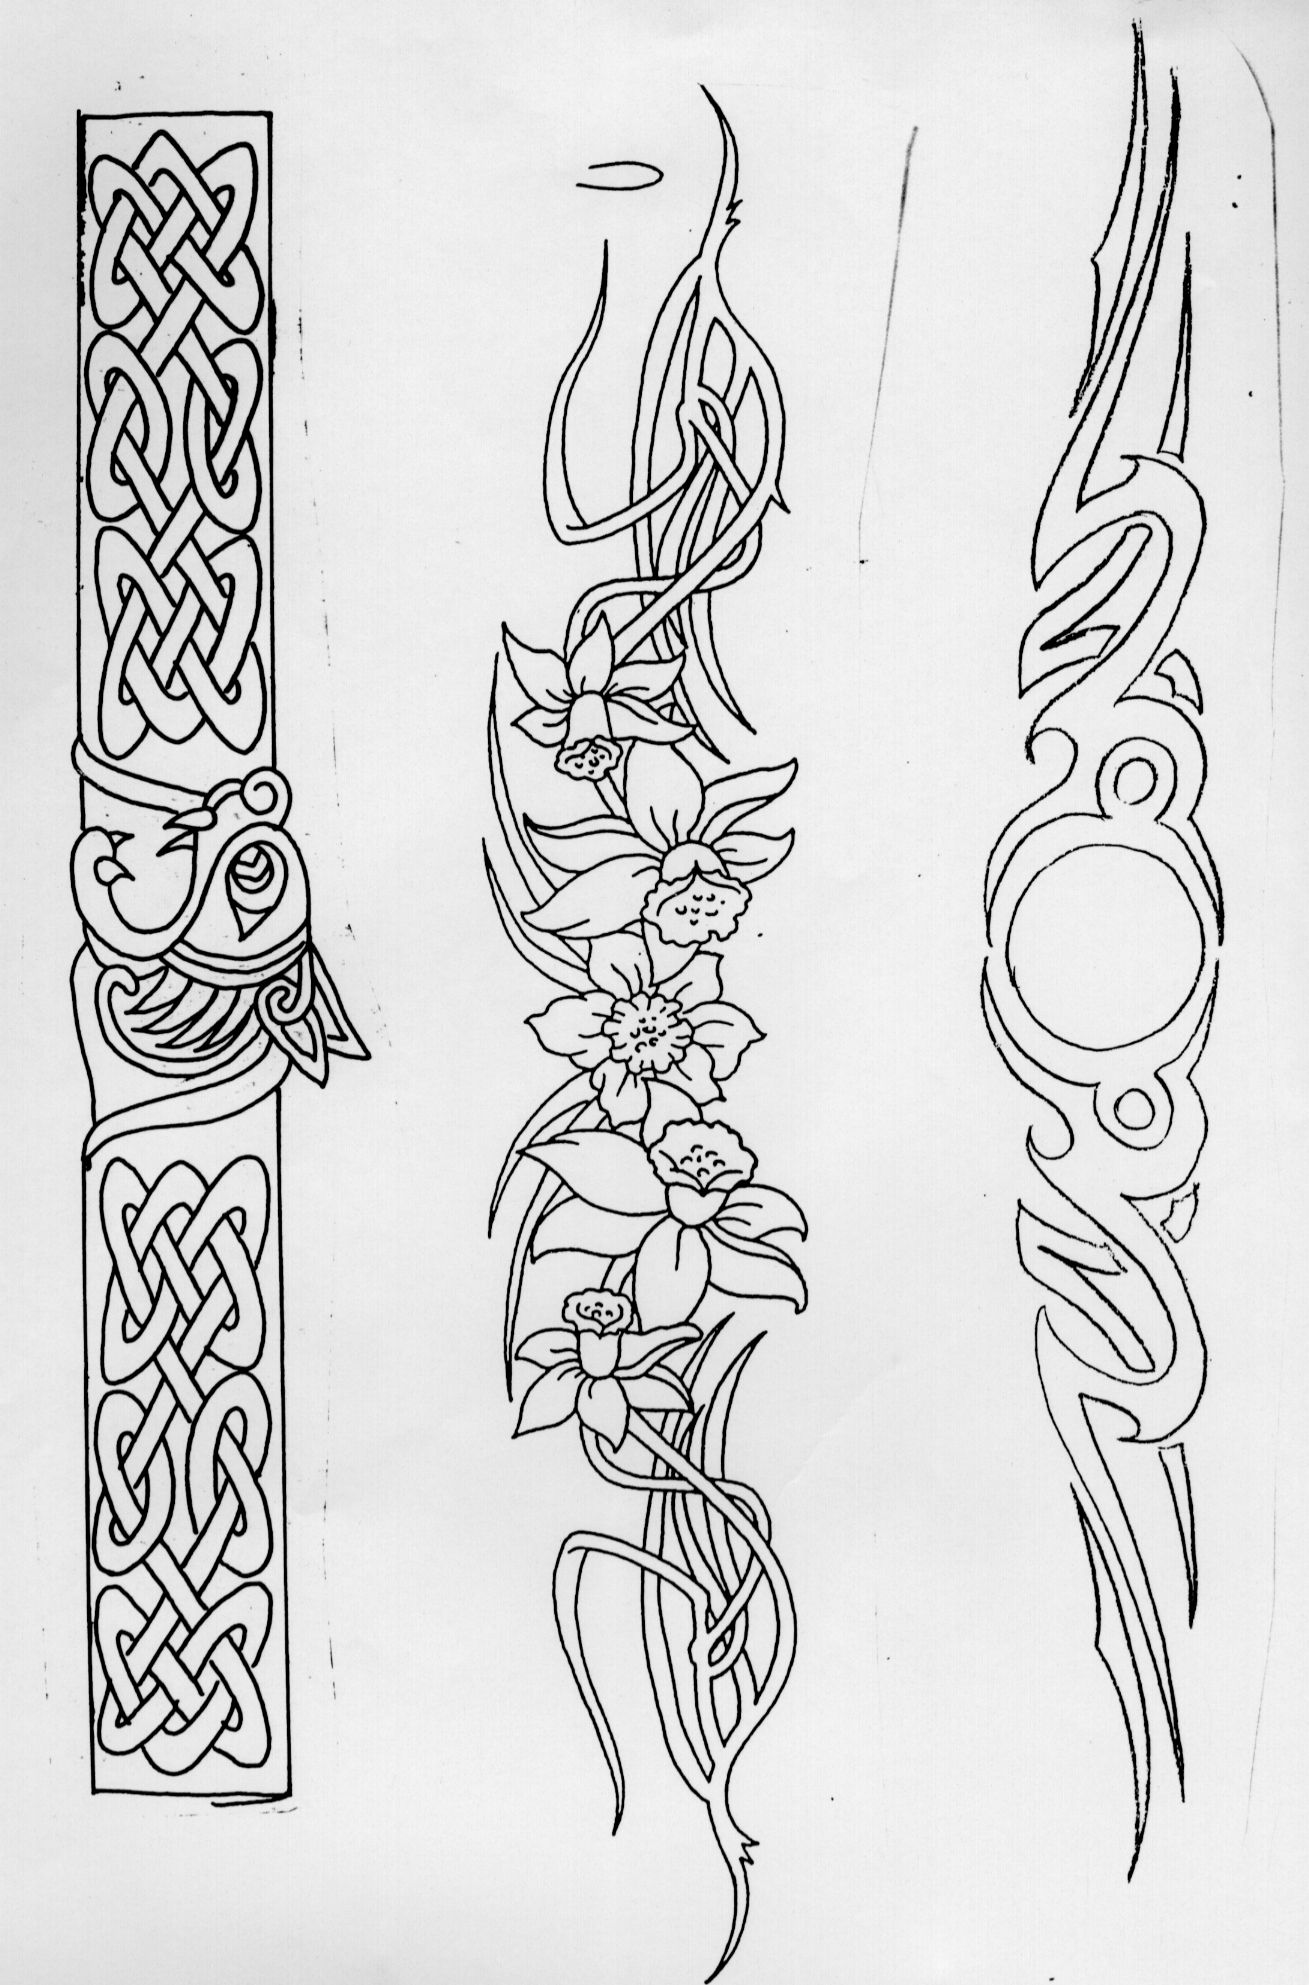 Viking Armband Tattoo Designs: Band Tattoo, Arm Band